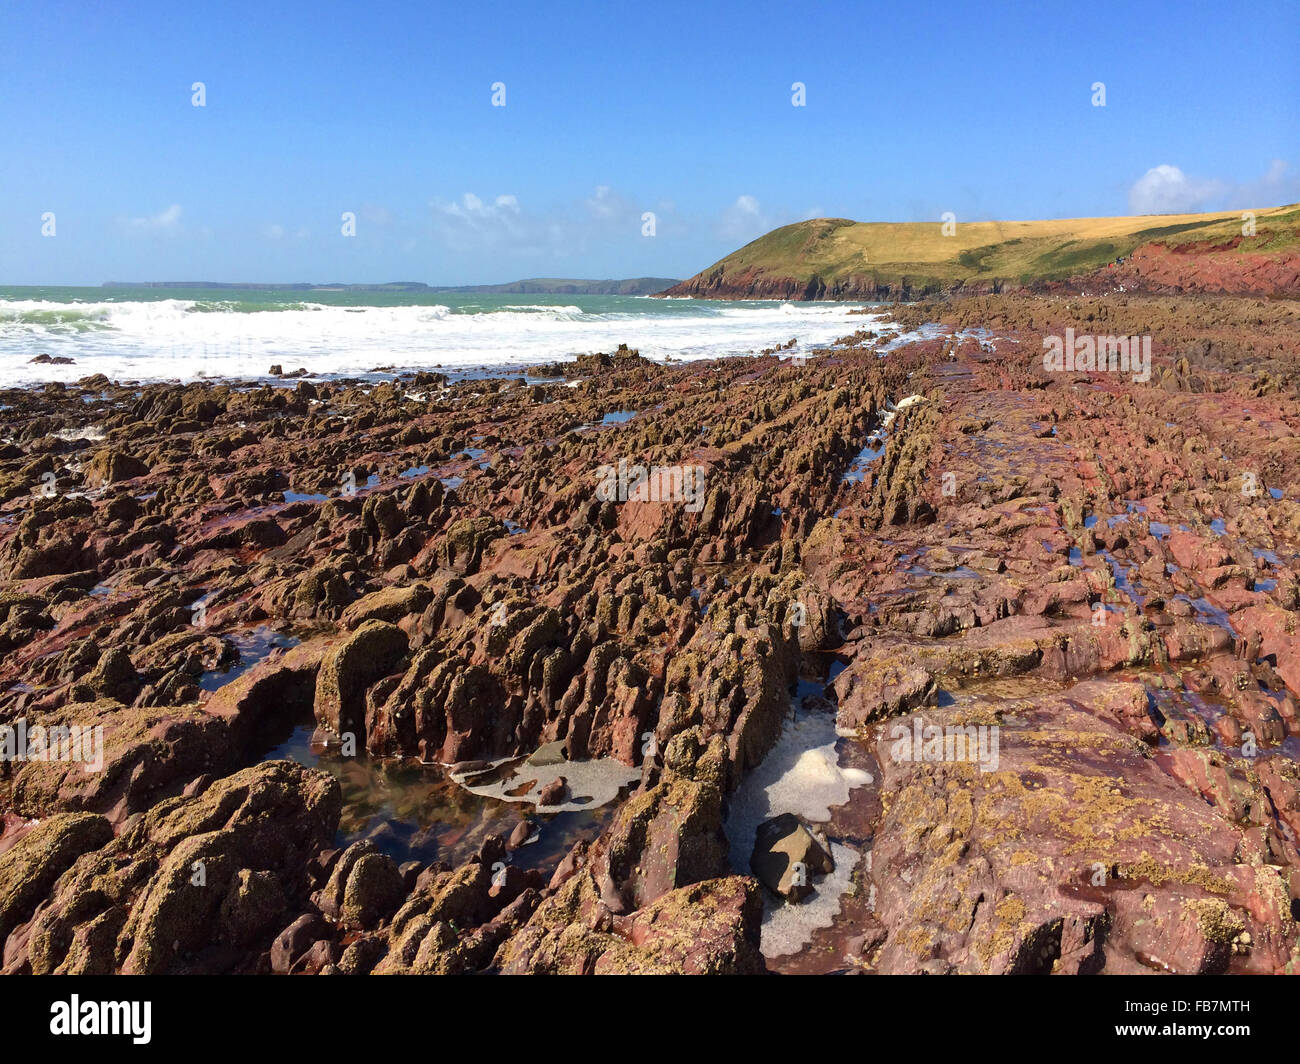 Old Red Sandstone beds on the beach at Manobier - Stock Image